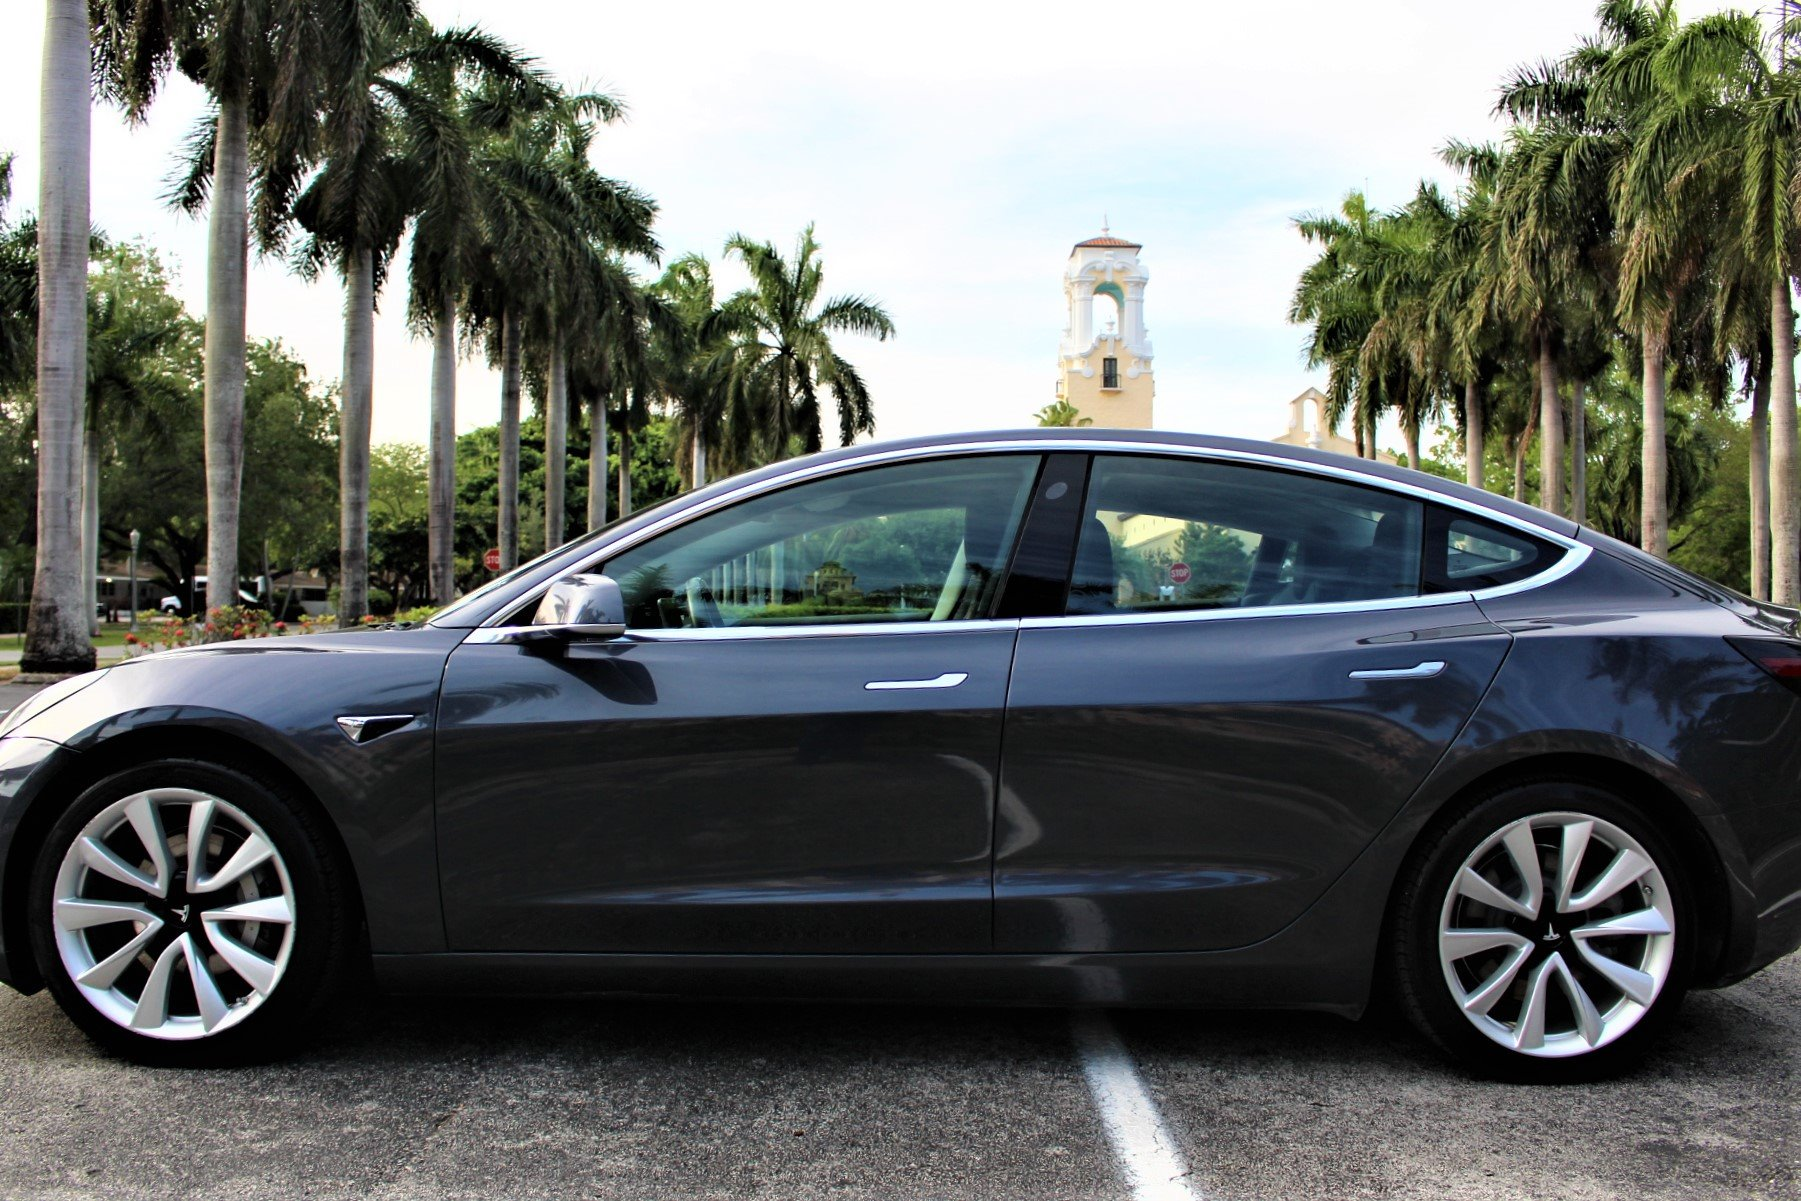 Used 2018 Tesla Model 3 Long Range for sale Sold at The Gables Sports Cars in Miami FL 33146 2